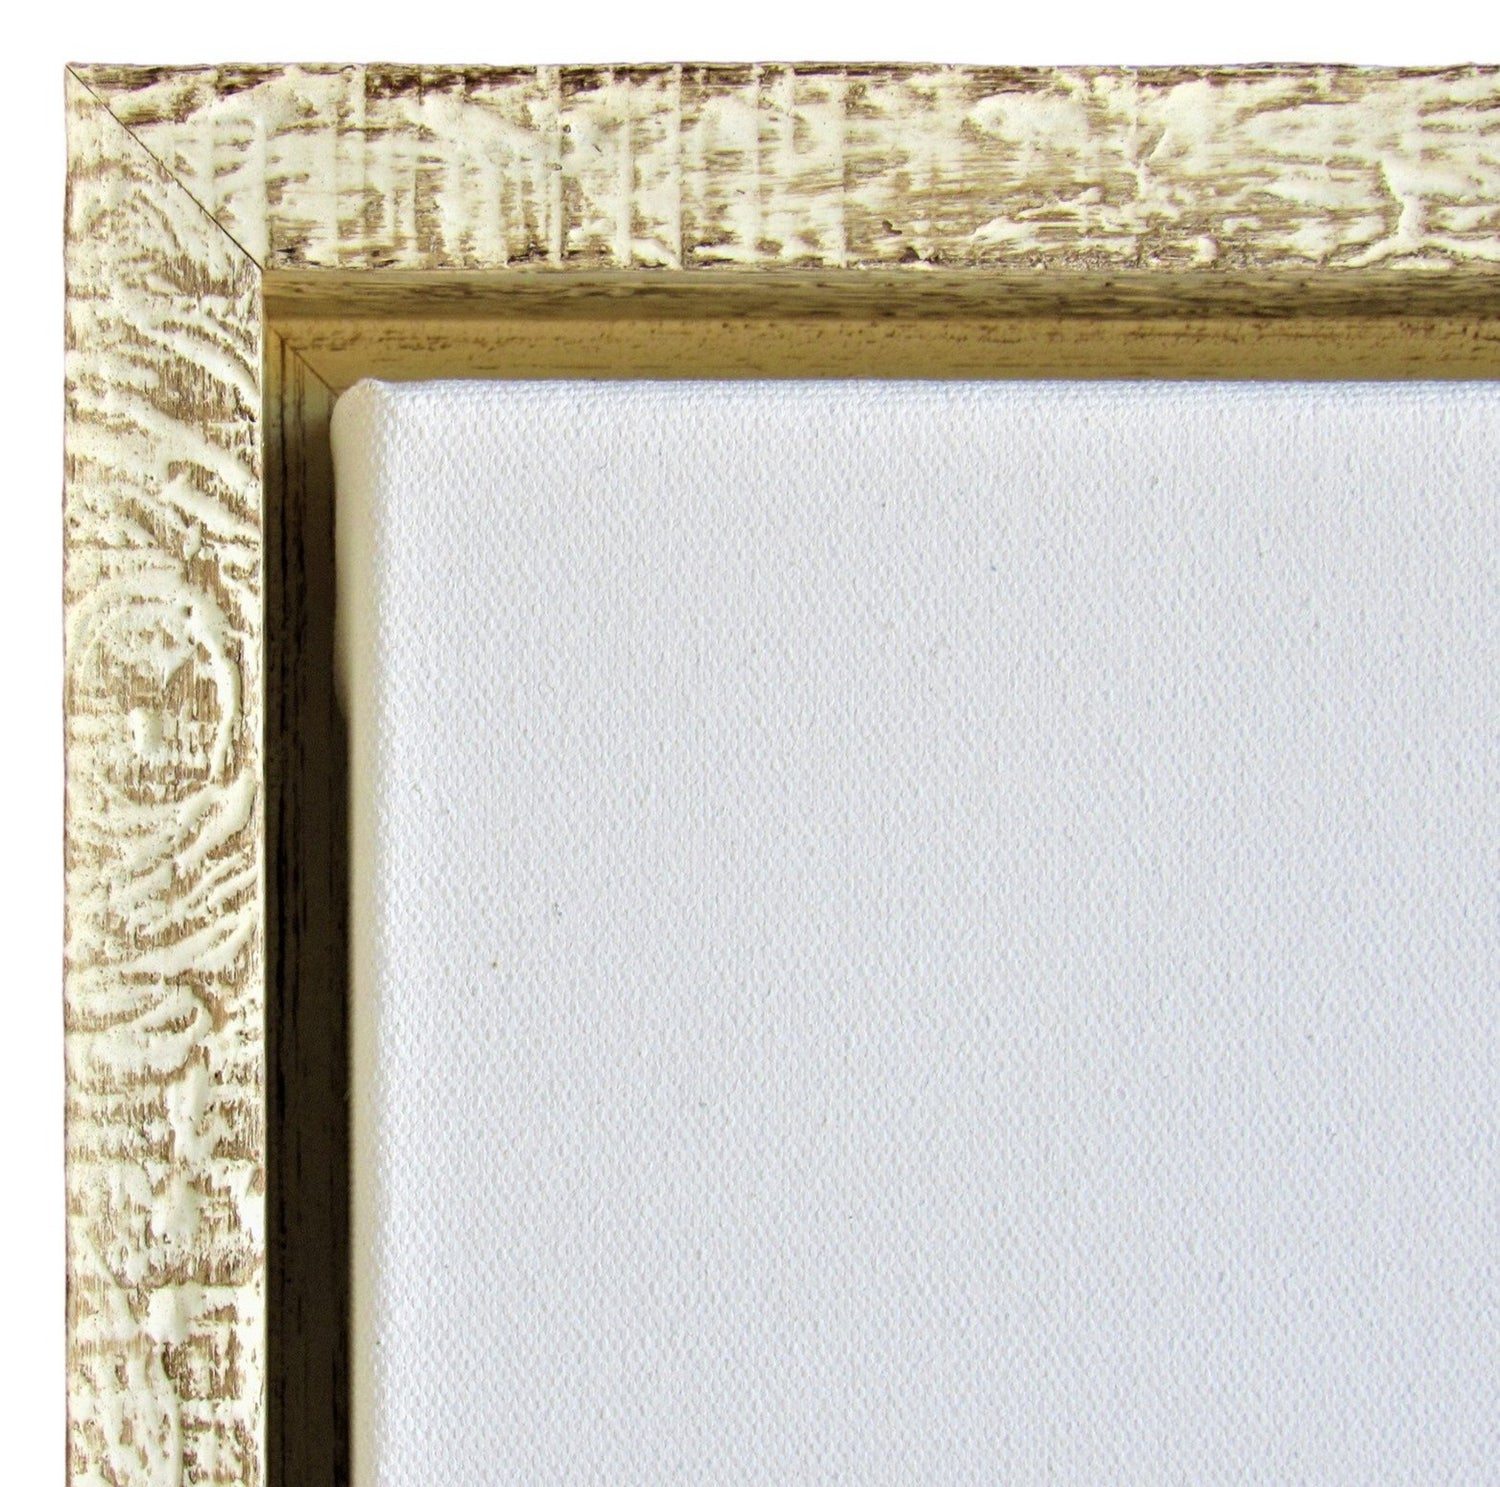 "Rustic White Floater Frame for 1.5"" deep art canvas"